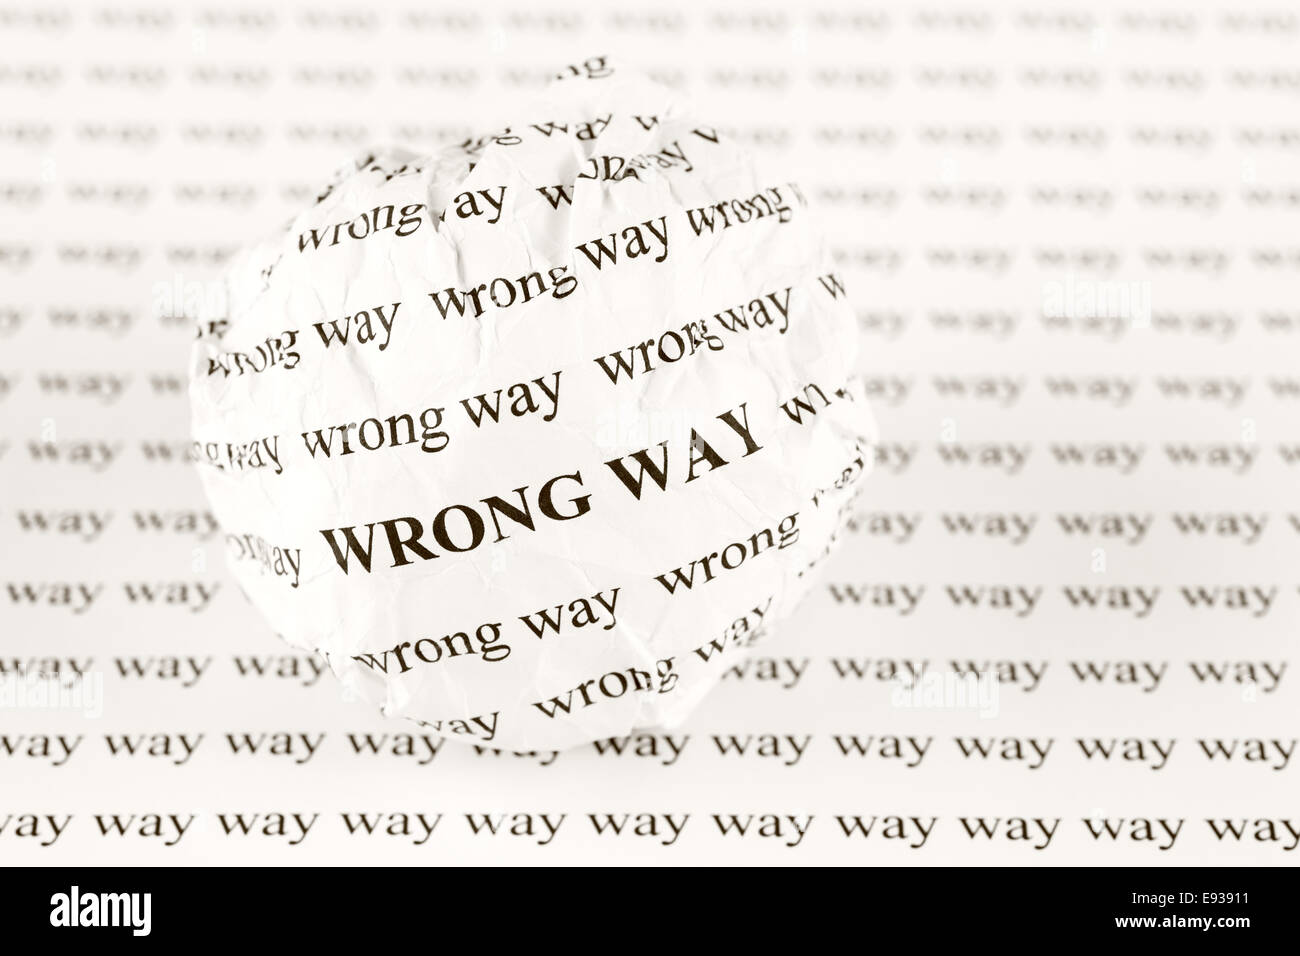 Crumpled paper ball with words 'wrong way' on background with words 'way'. Sepia. - Stock Image